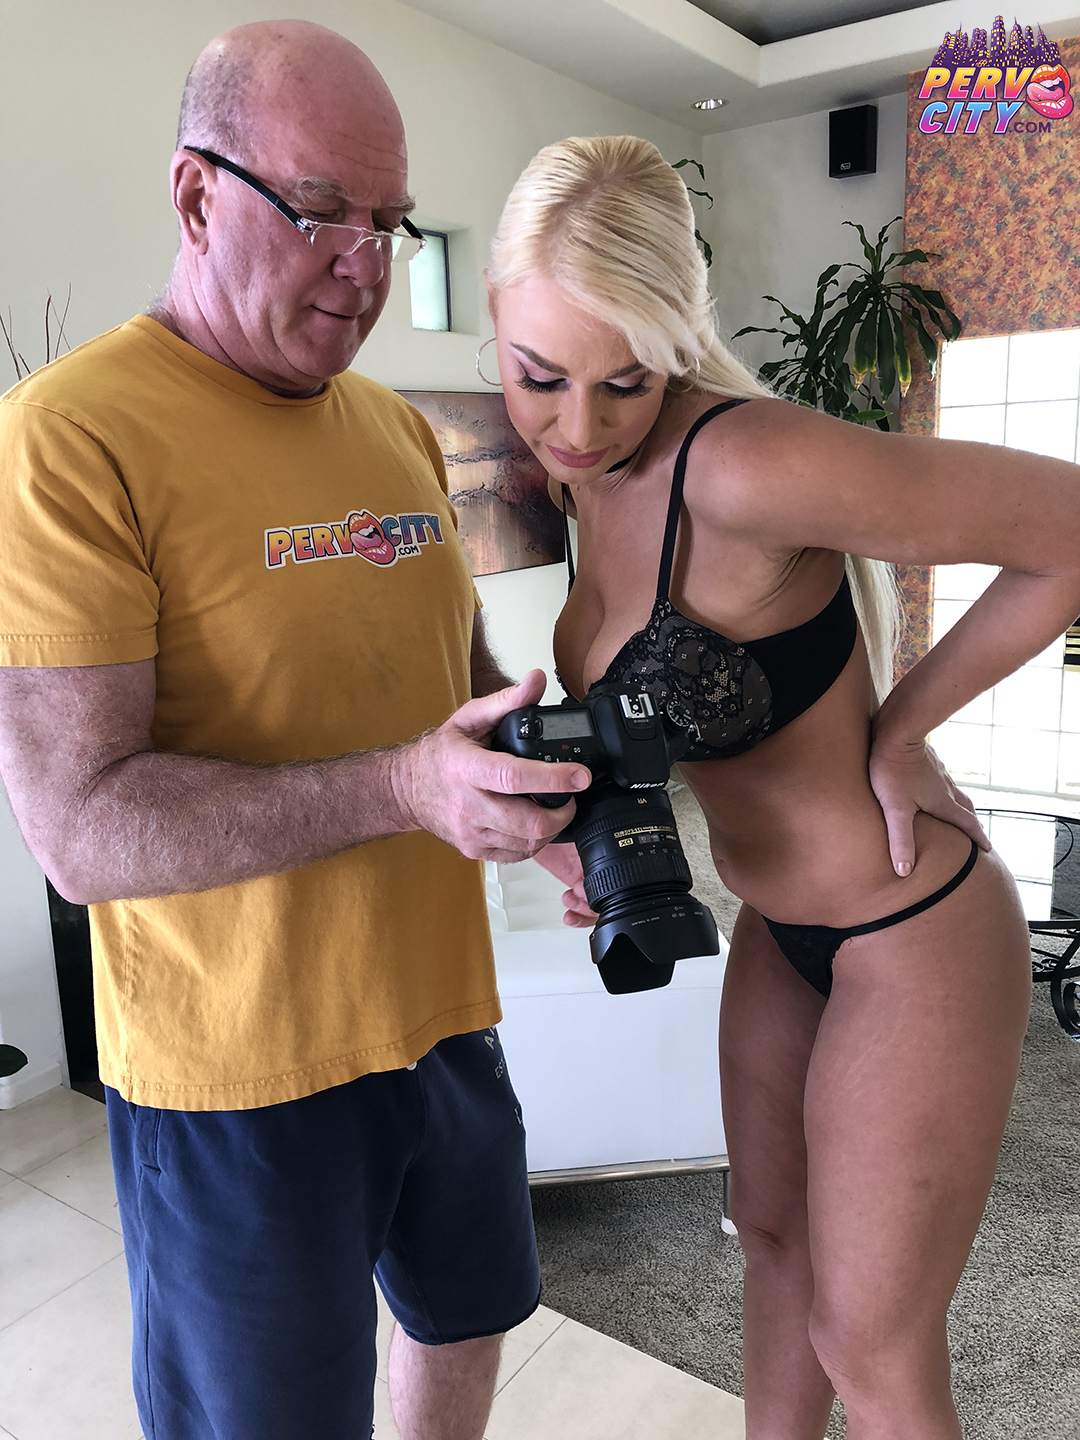 London River Anal Creampie Behind the Scenes